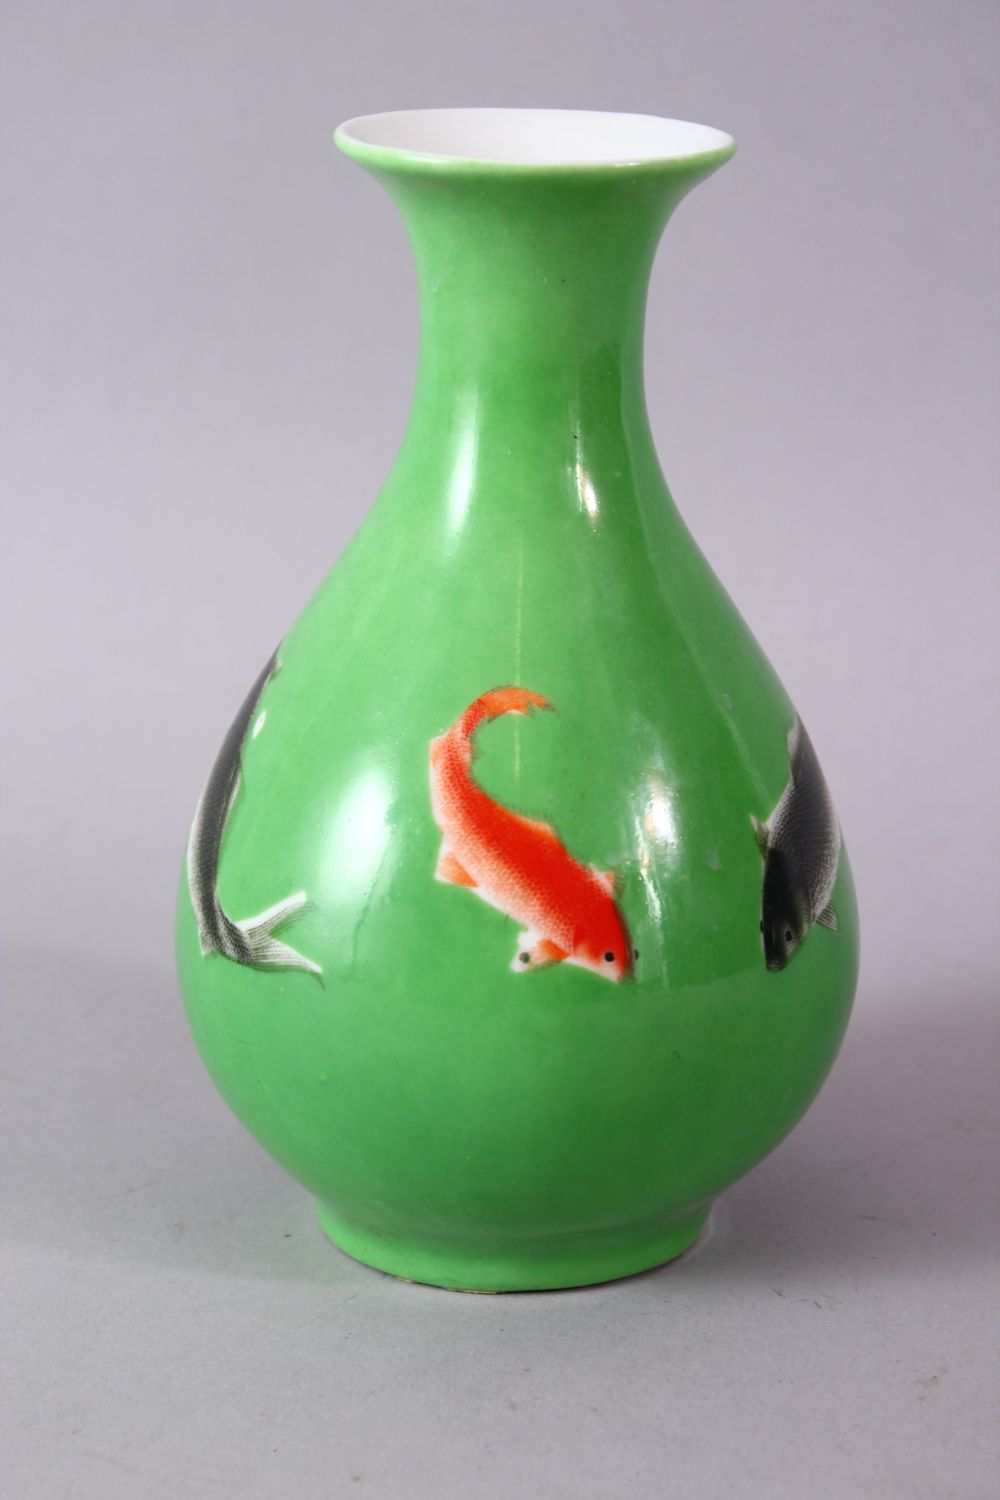 A CHINESE GREEN GLAZED VASE, painted with fish, mark in red, 15cm high. - Image 3 of 8